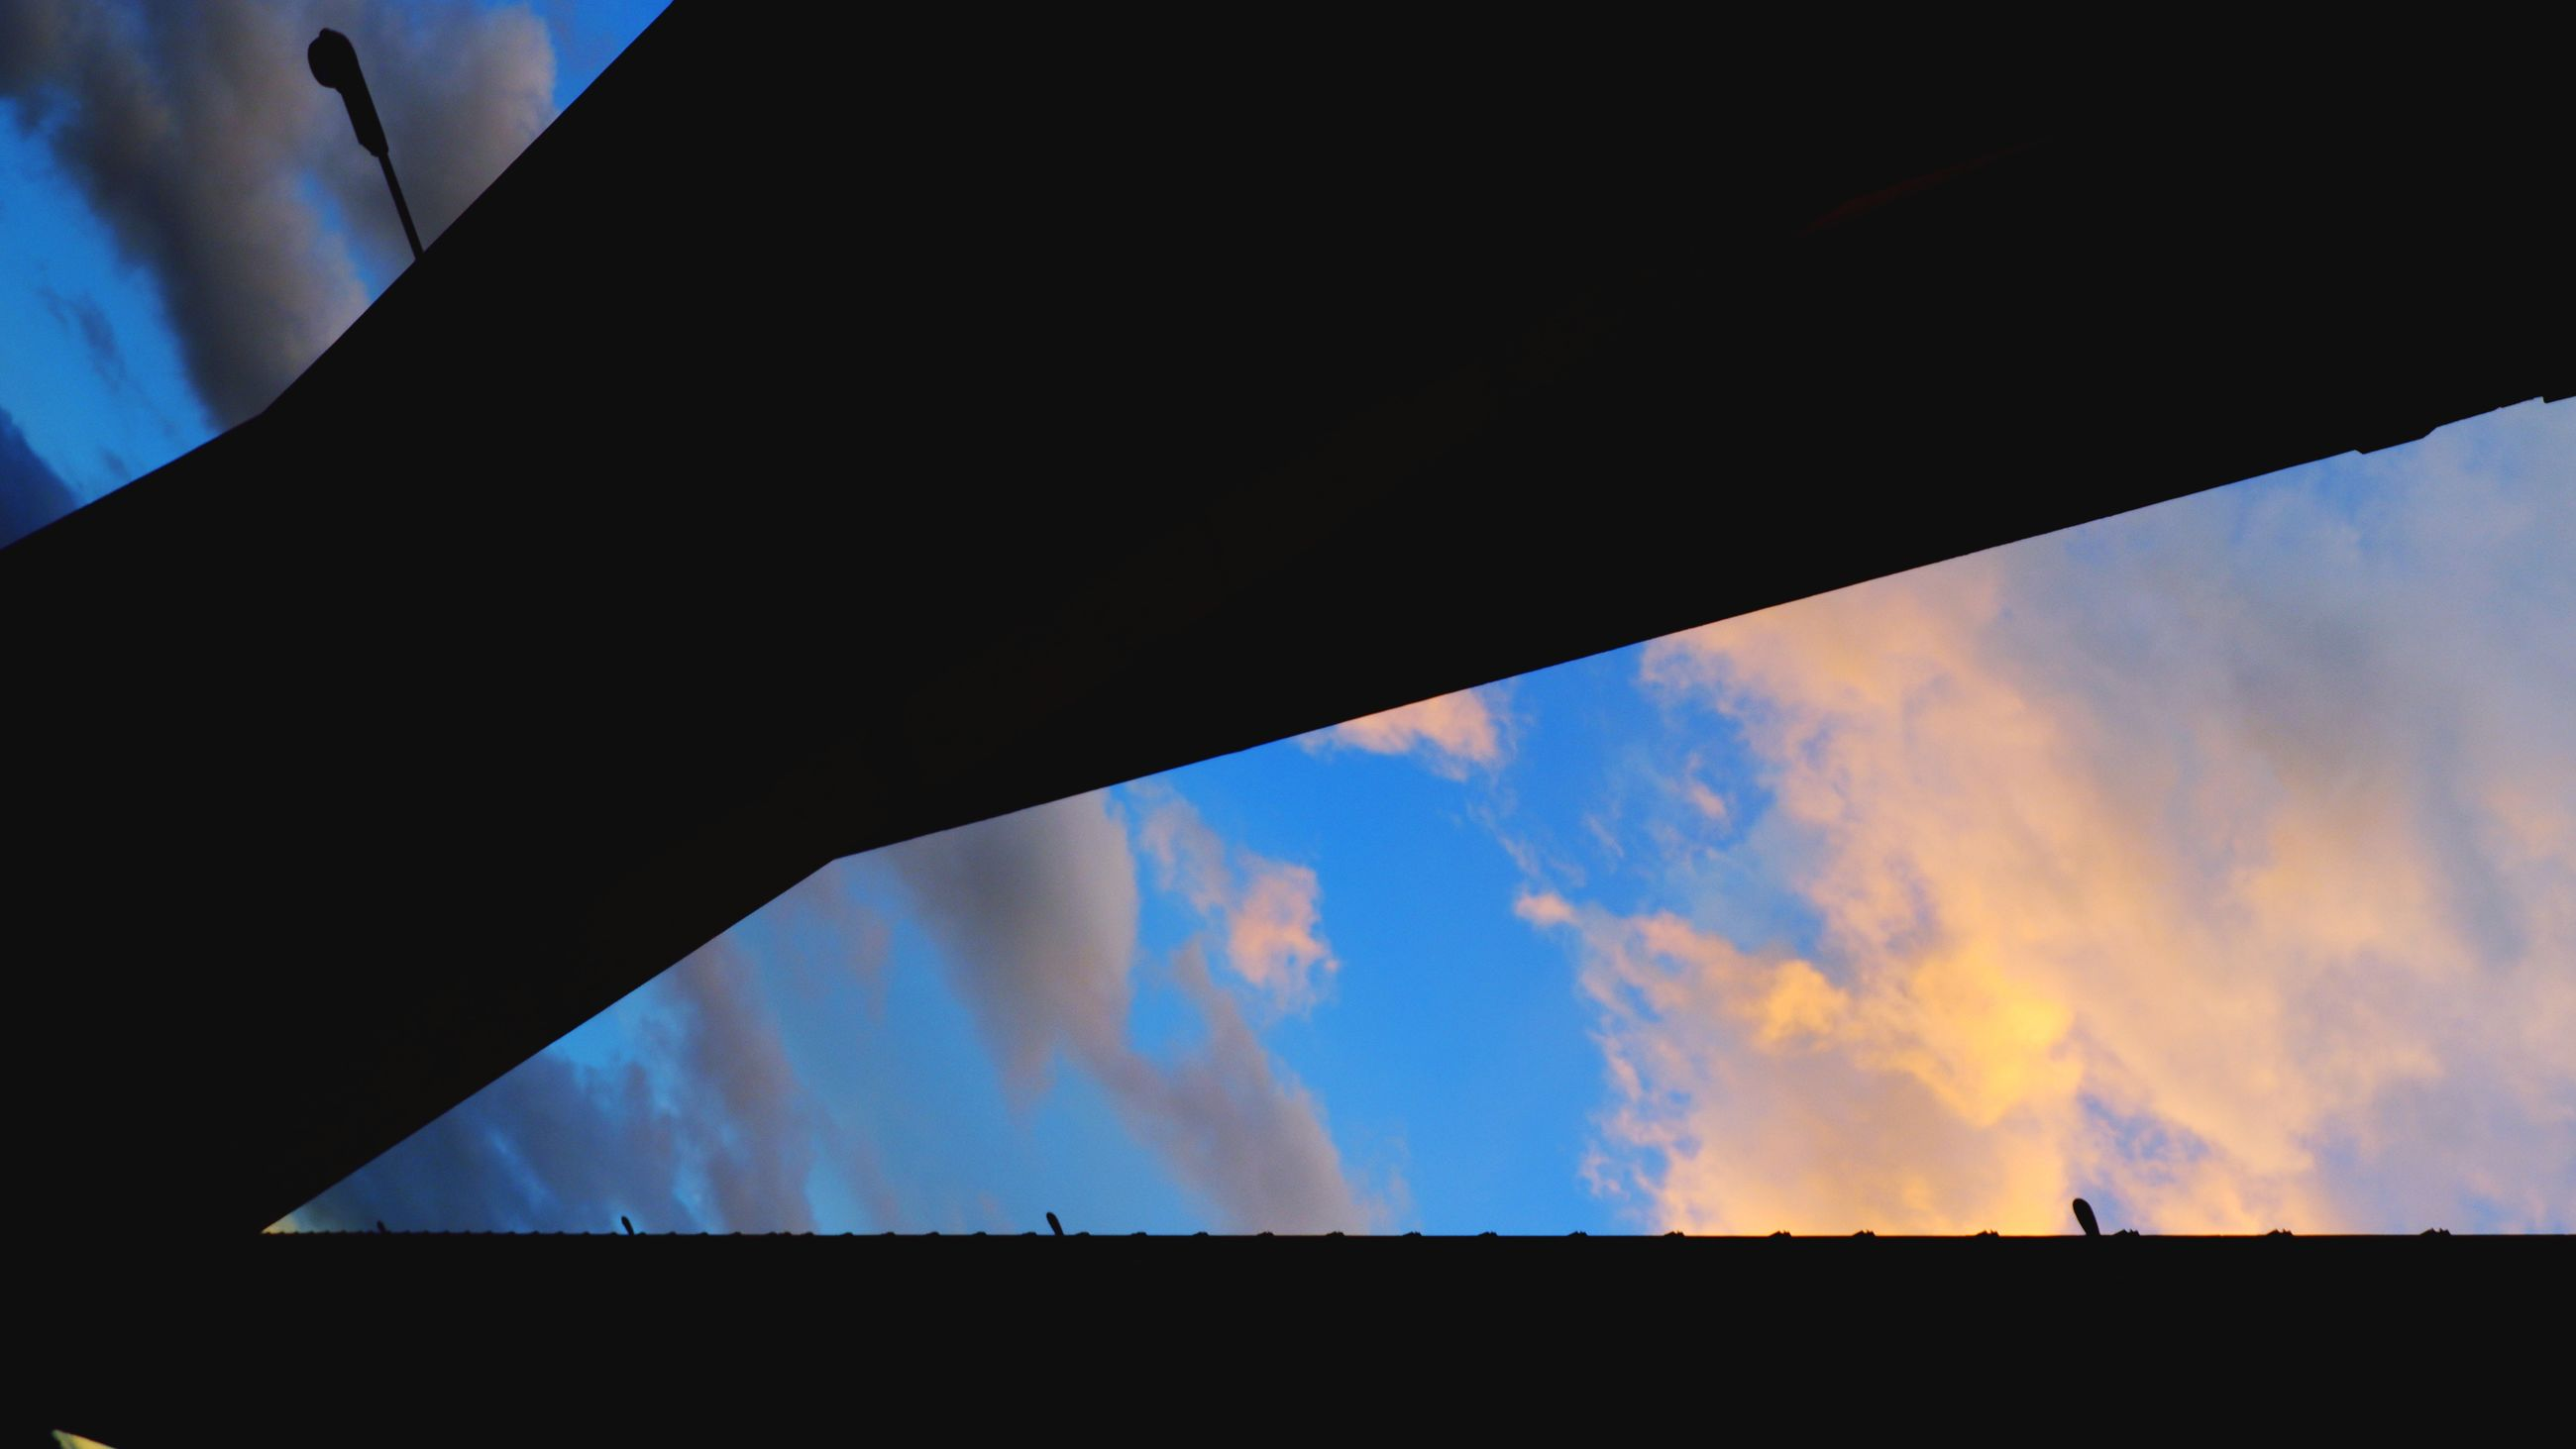 sky, cloud, silhouette, nature, no people, architecture, reflection, screenshot, outdoors, blue, low angle view